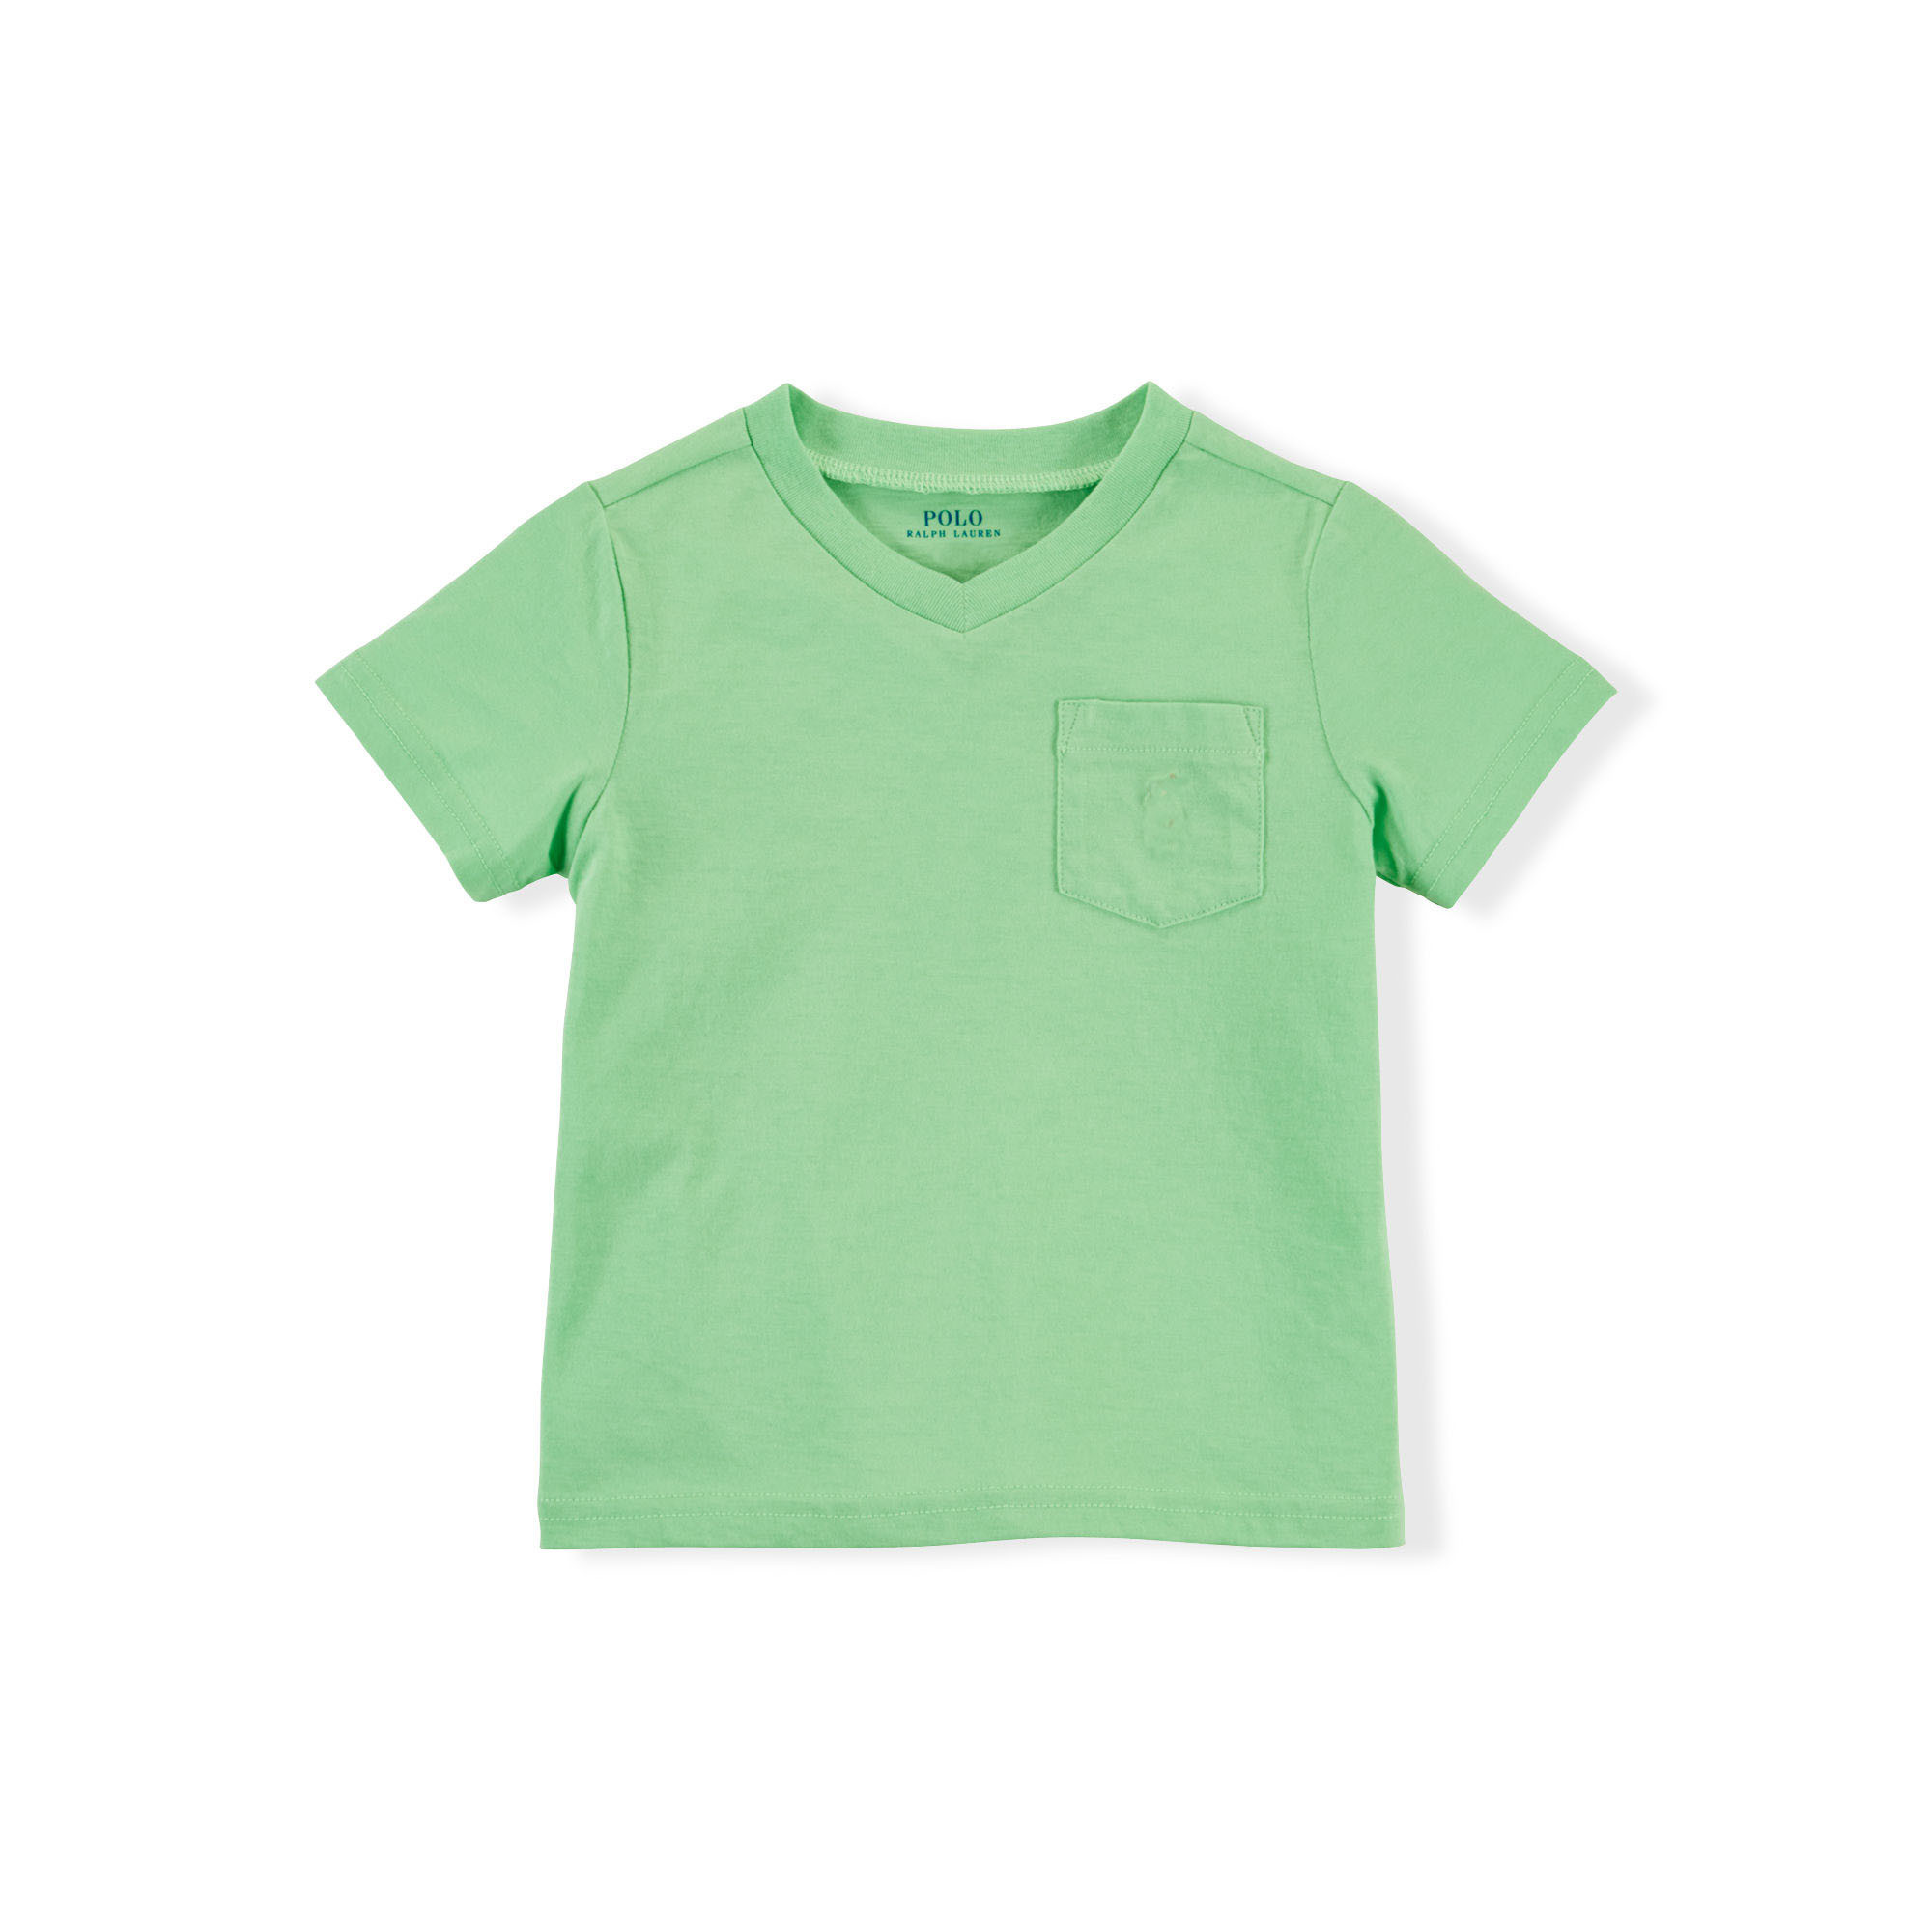 1eb034111 China 0-24months Cotton T Shirt Unisex Baby Clothing - China Baby ...